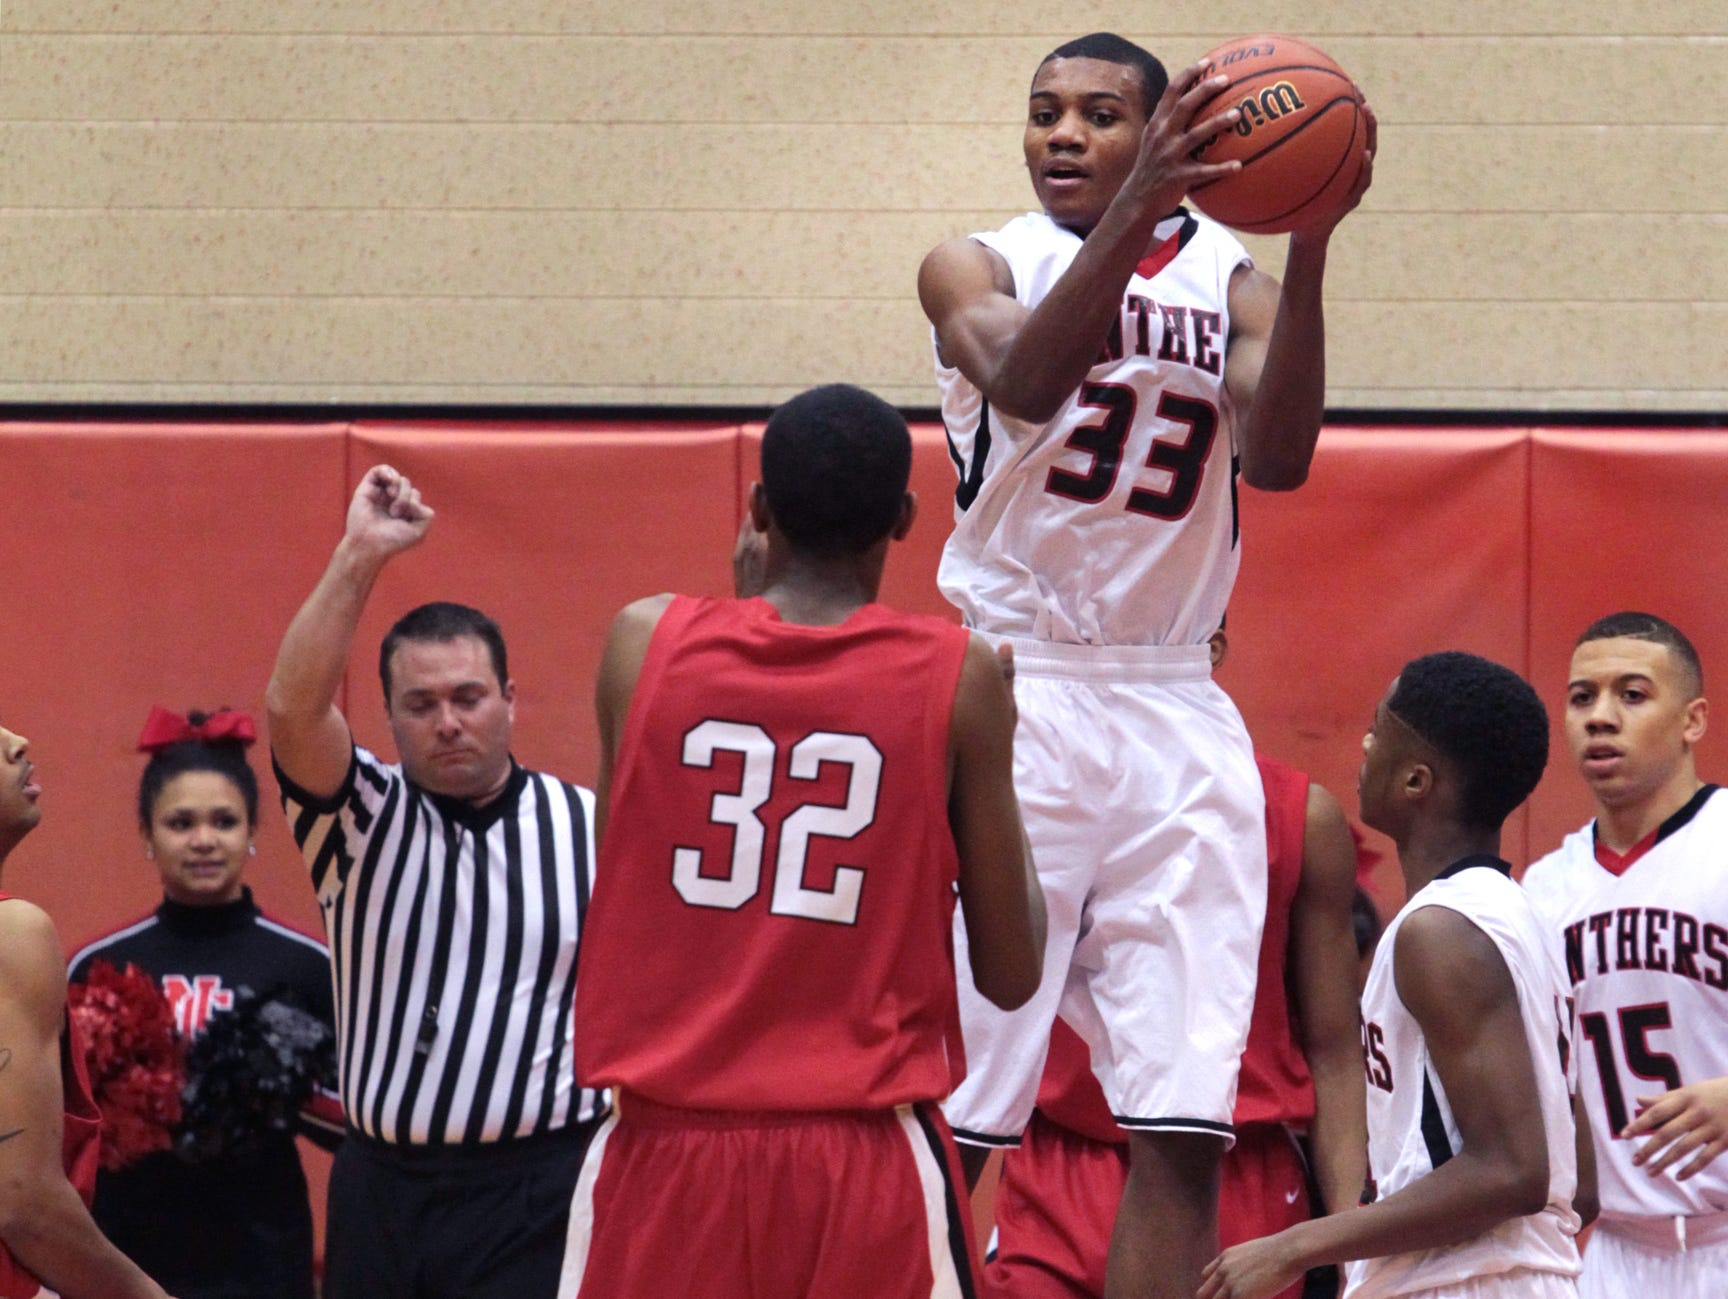 North Central's Antonio Singleton comes down with a rebound against Pike, Nov. 27, 2013.